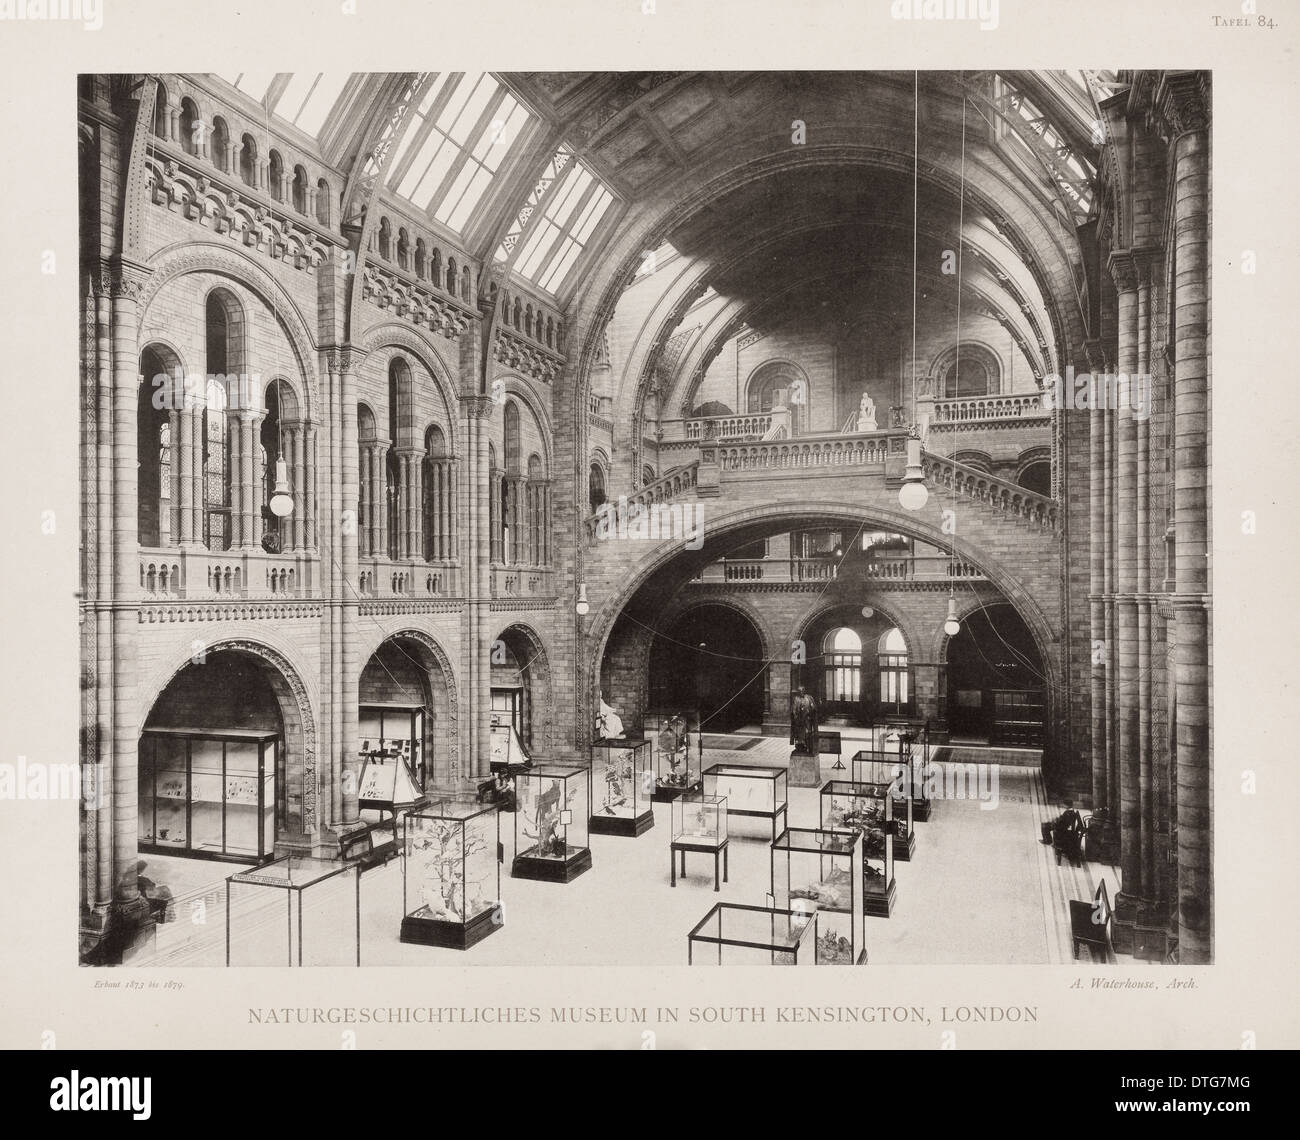 Central Hall. 25th August 1902 - Stock Image